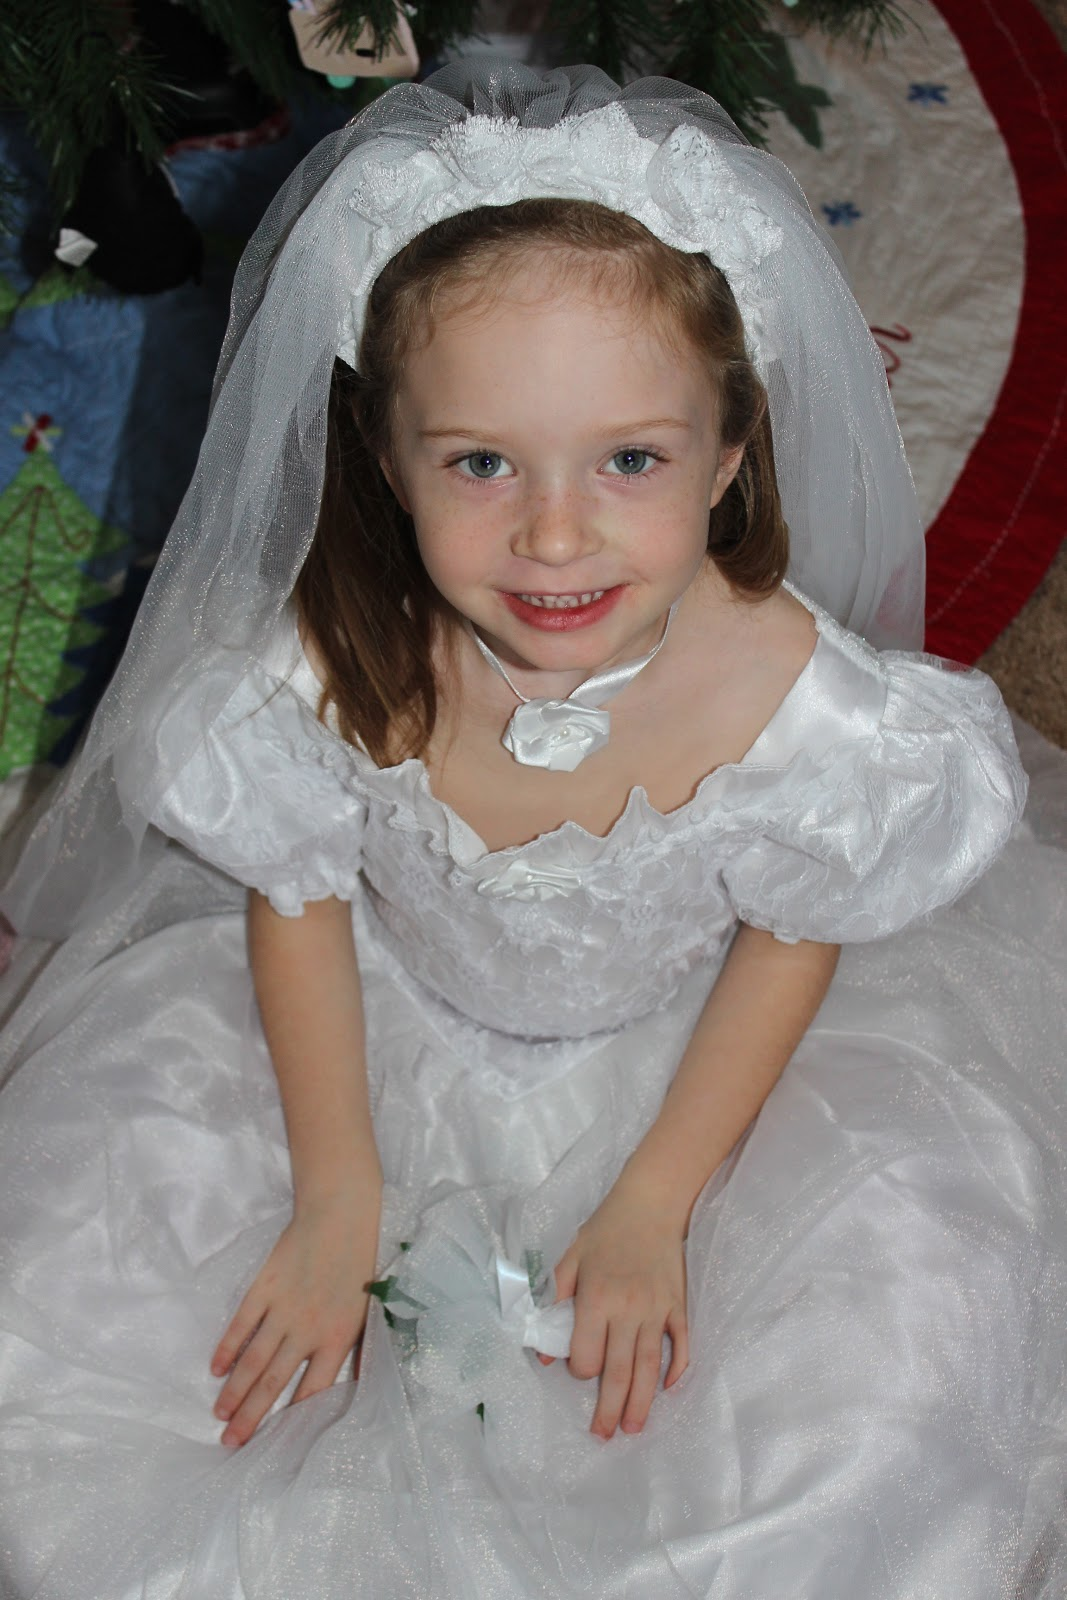 Download image Glamourvision Little Brides Girls PC, Android, iPhone ...